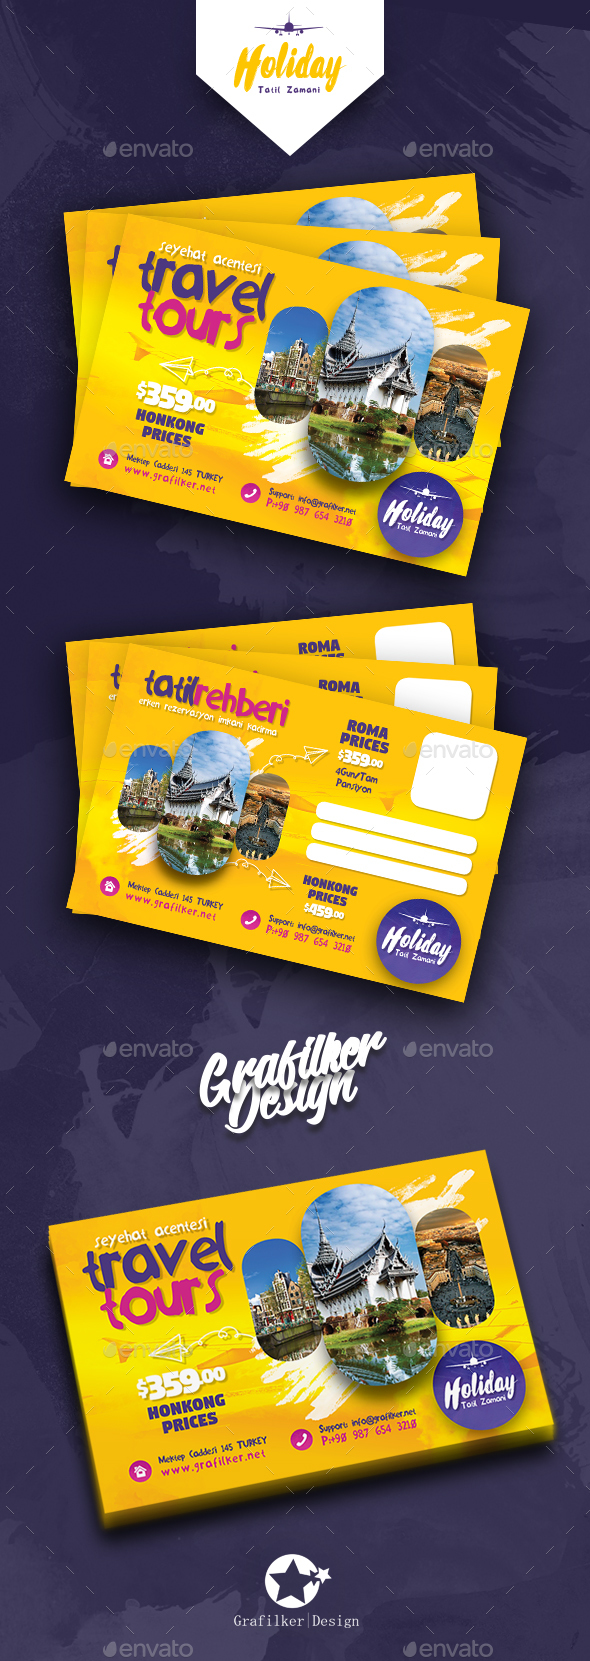 Travel Tours Postcard Templates - Cards & Invites Print Templates